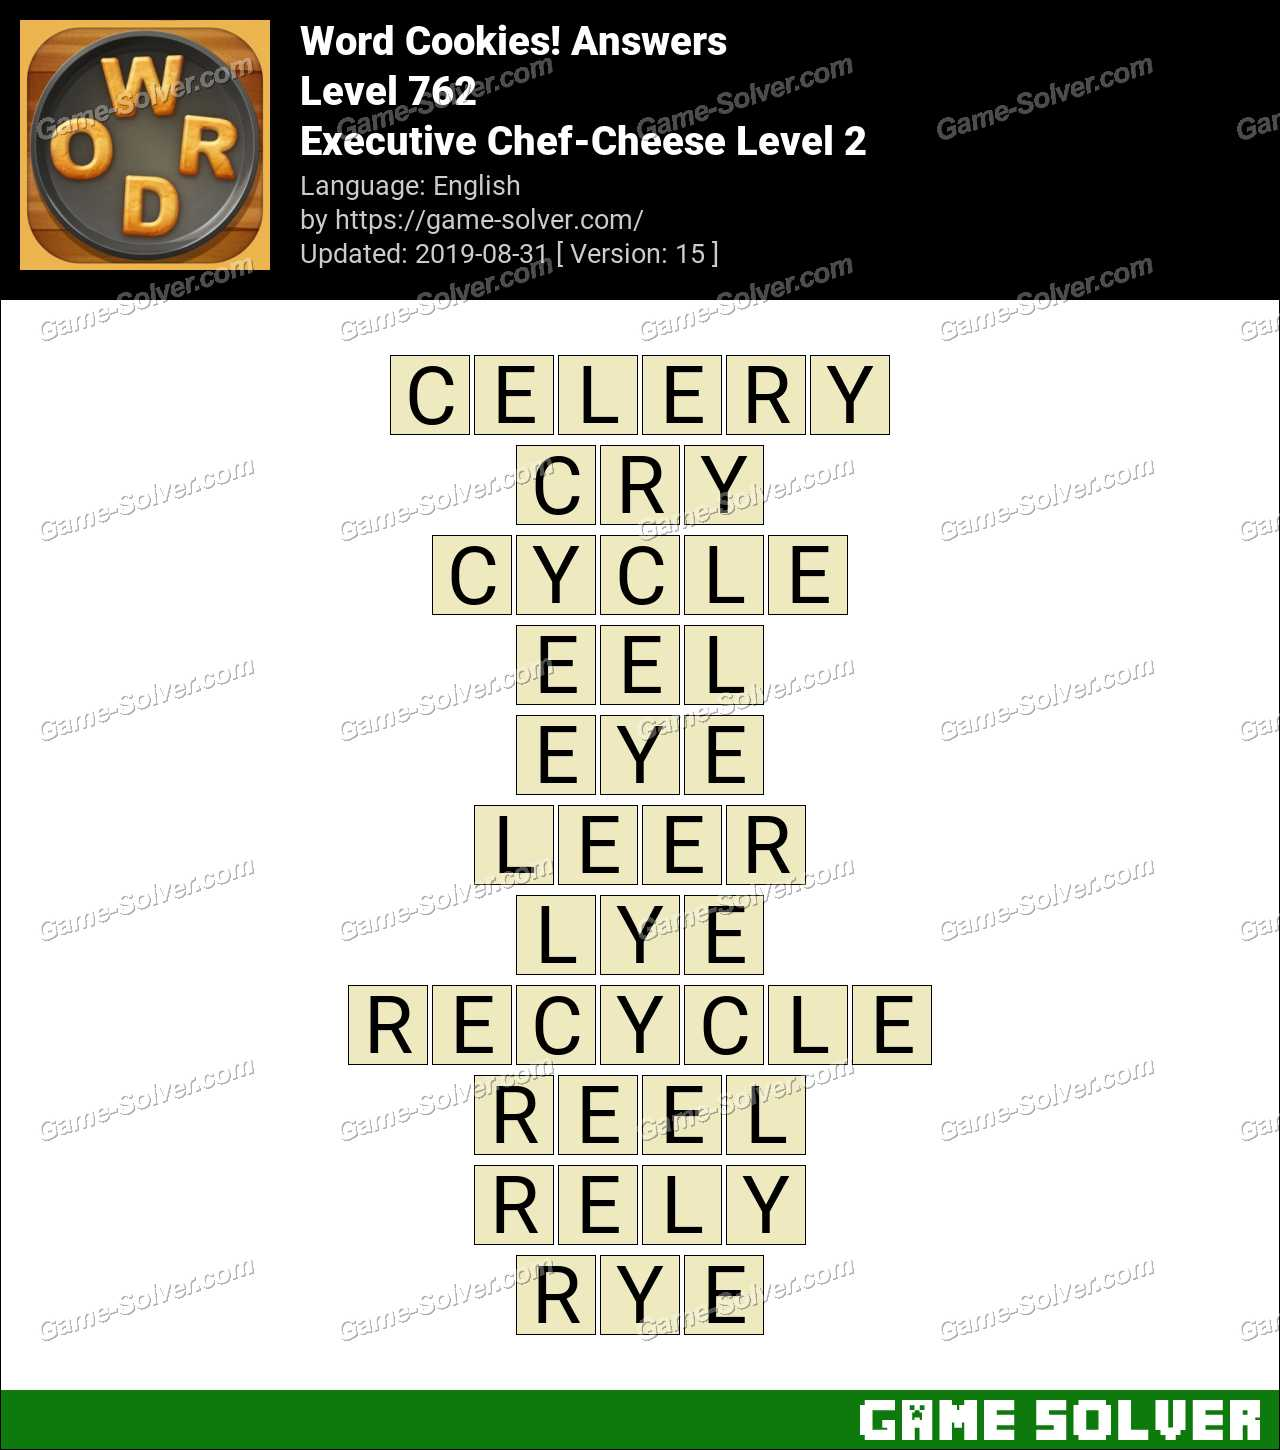 Word Cookies Executive Chef-Cheese Level 2 Answers